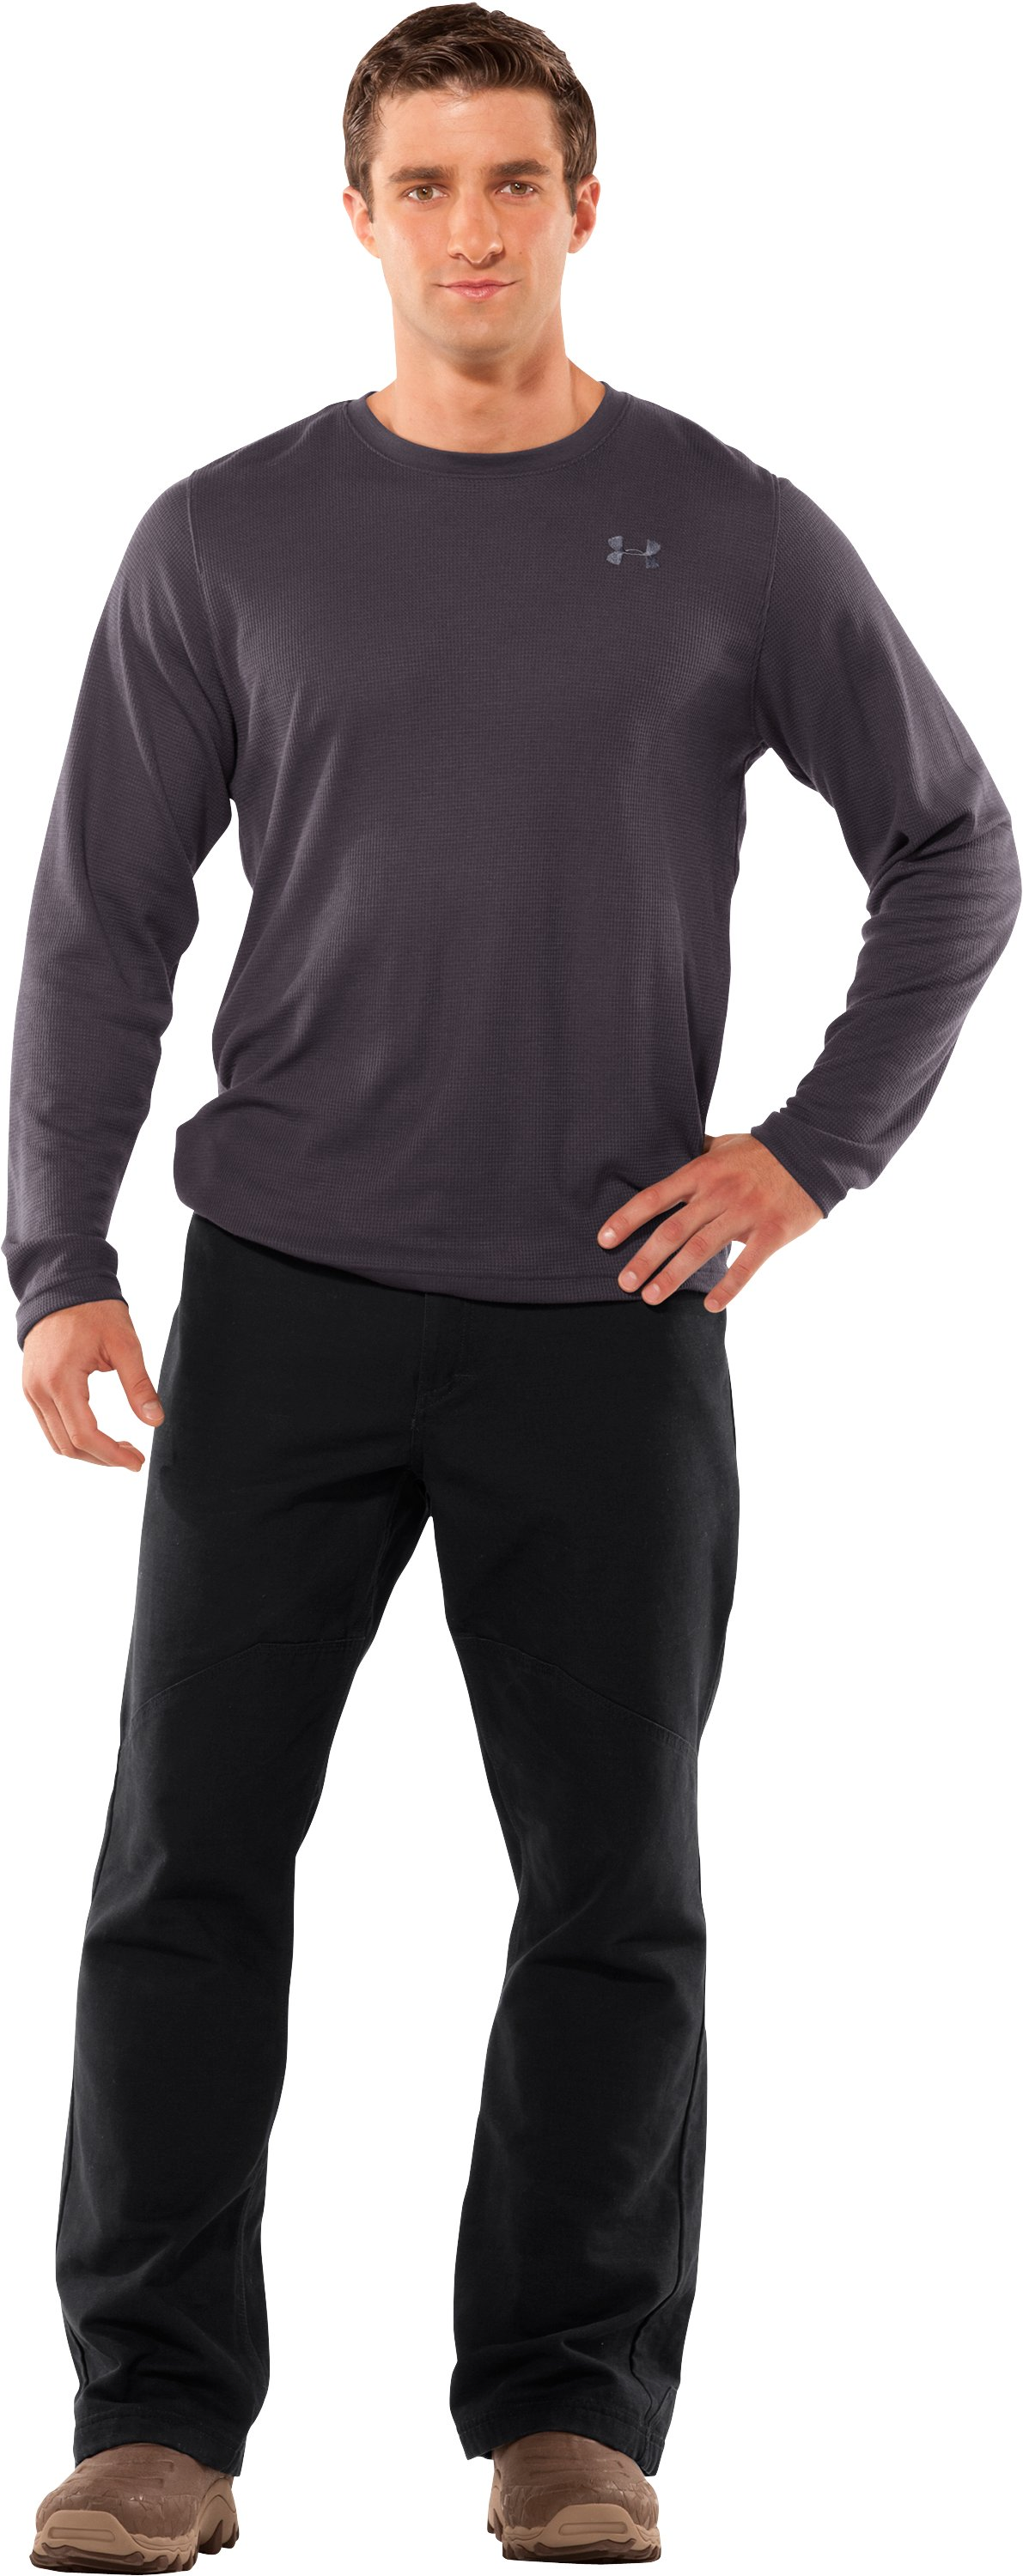 Men's Long Sleeve Waffle Crew, Charcoal